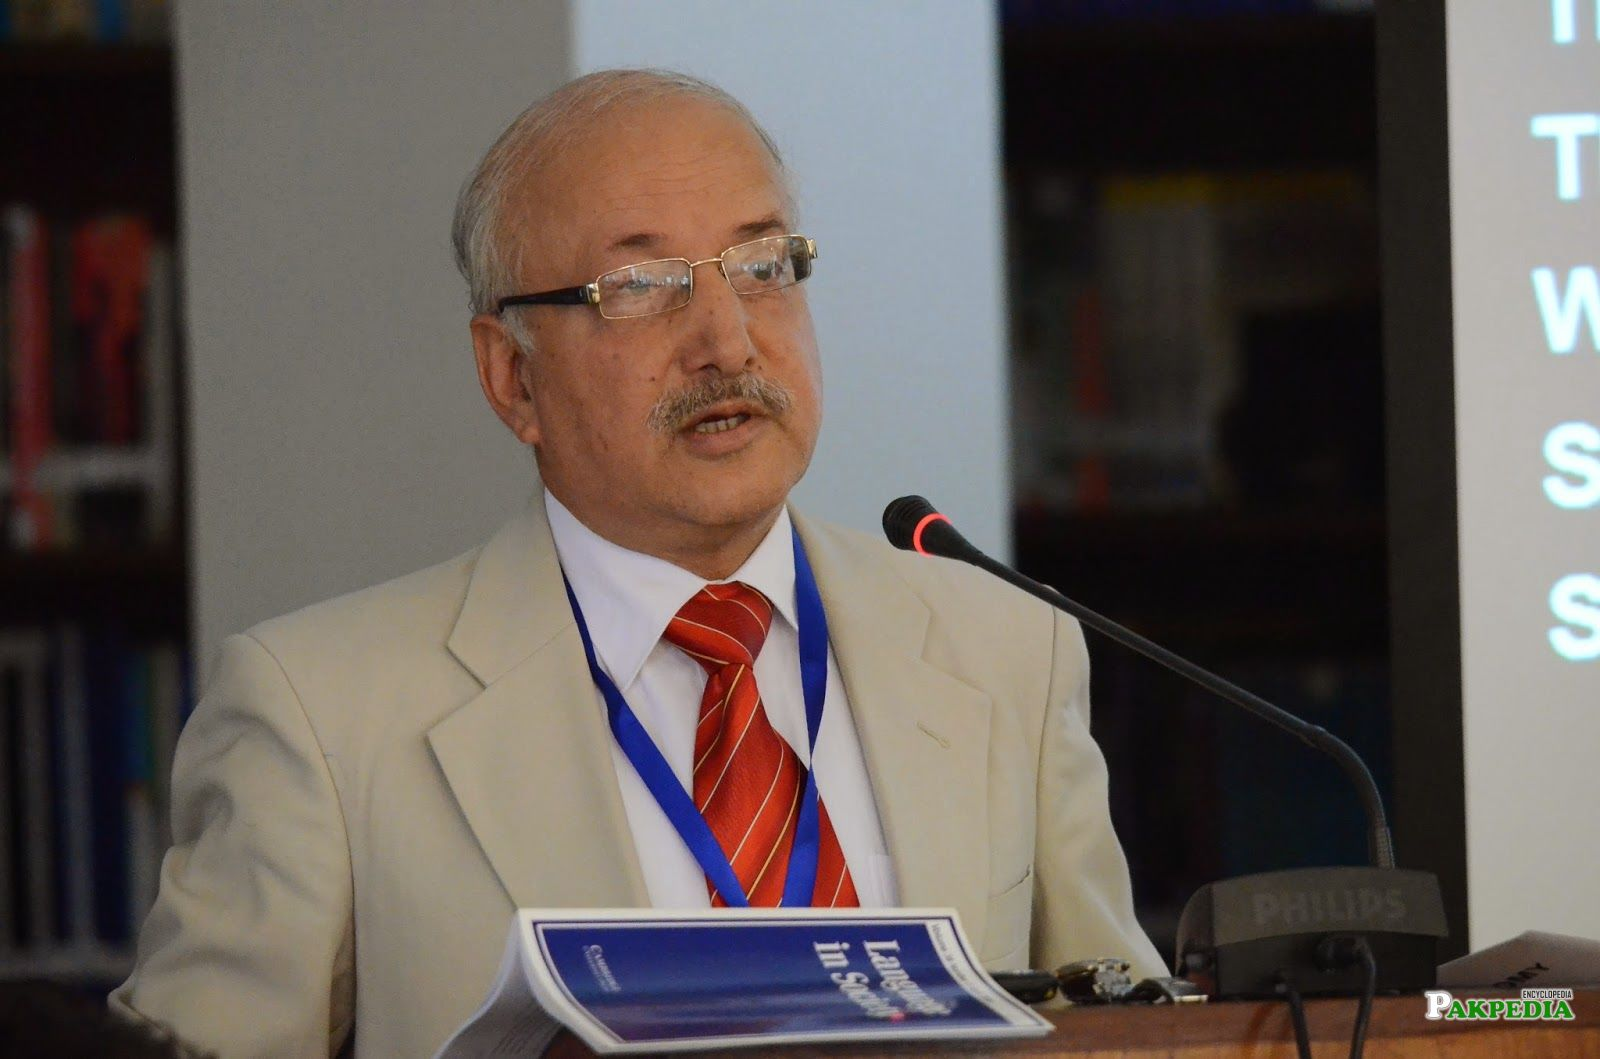 Dr. Tariq Rahman, Dean, School of Education, Beaconhouse National University, Lahore